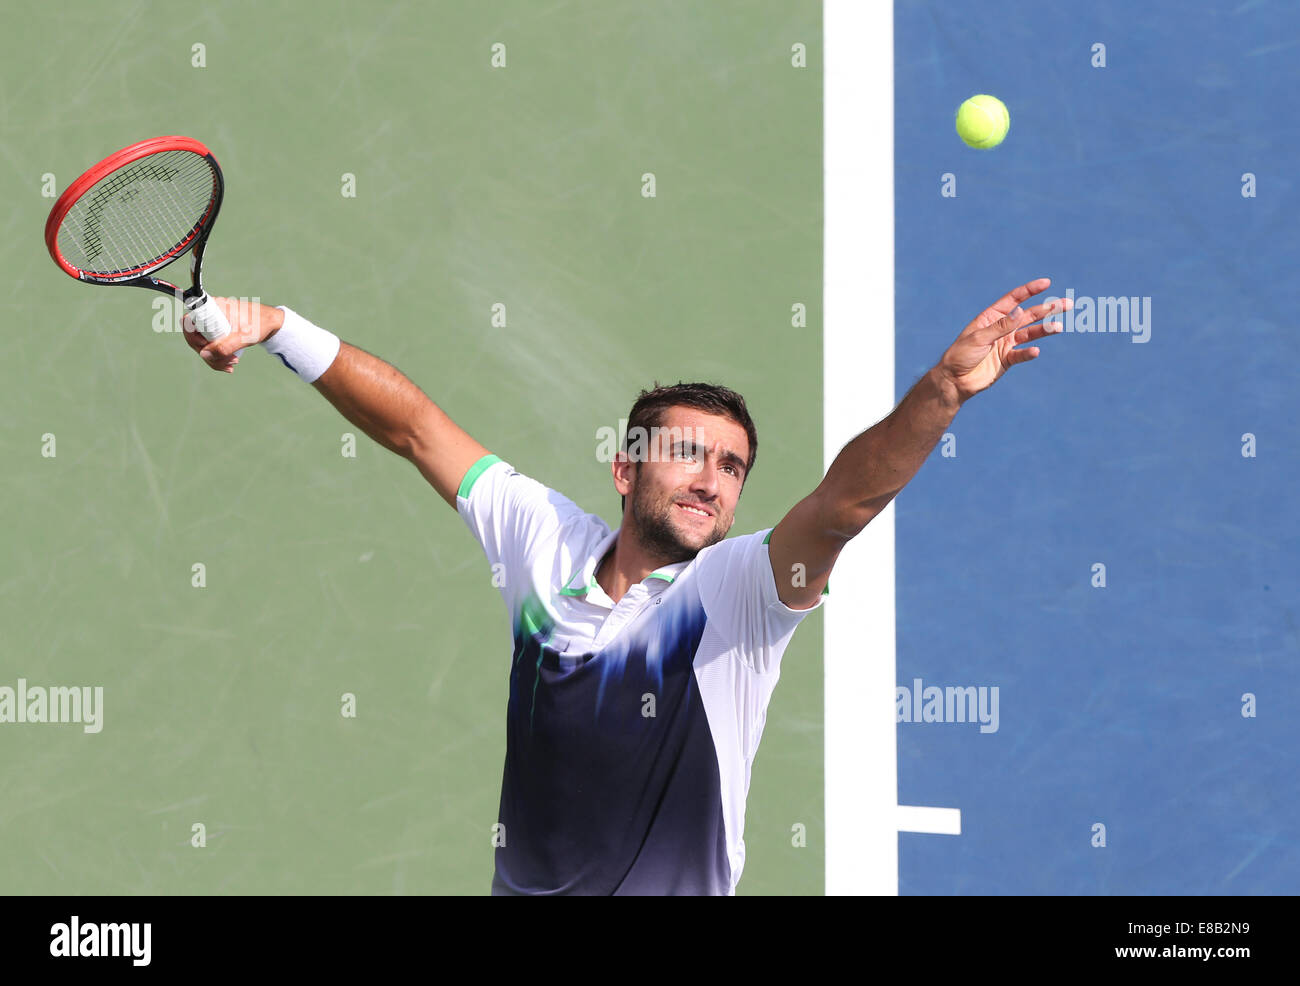 Marin Cilic (CRO) in action at the US Open 2014 Championships in New York,  Marin - Stock Image